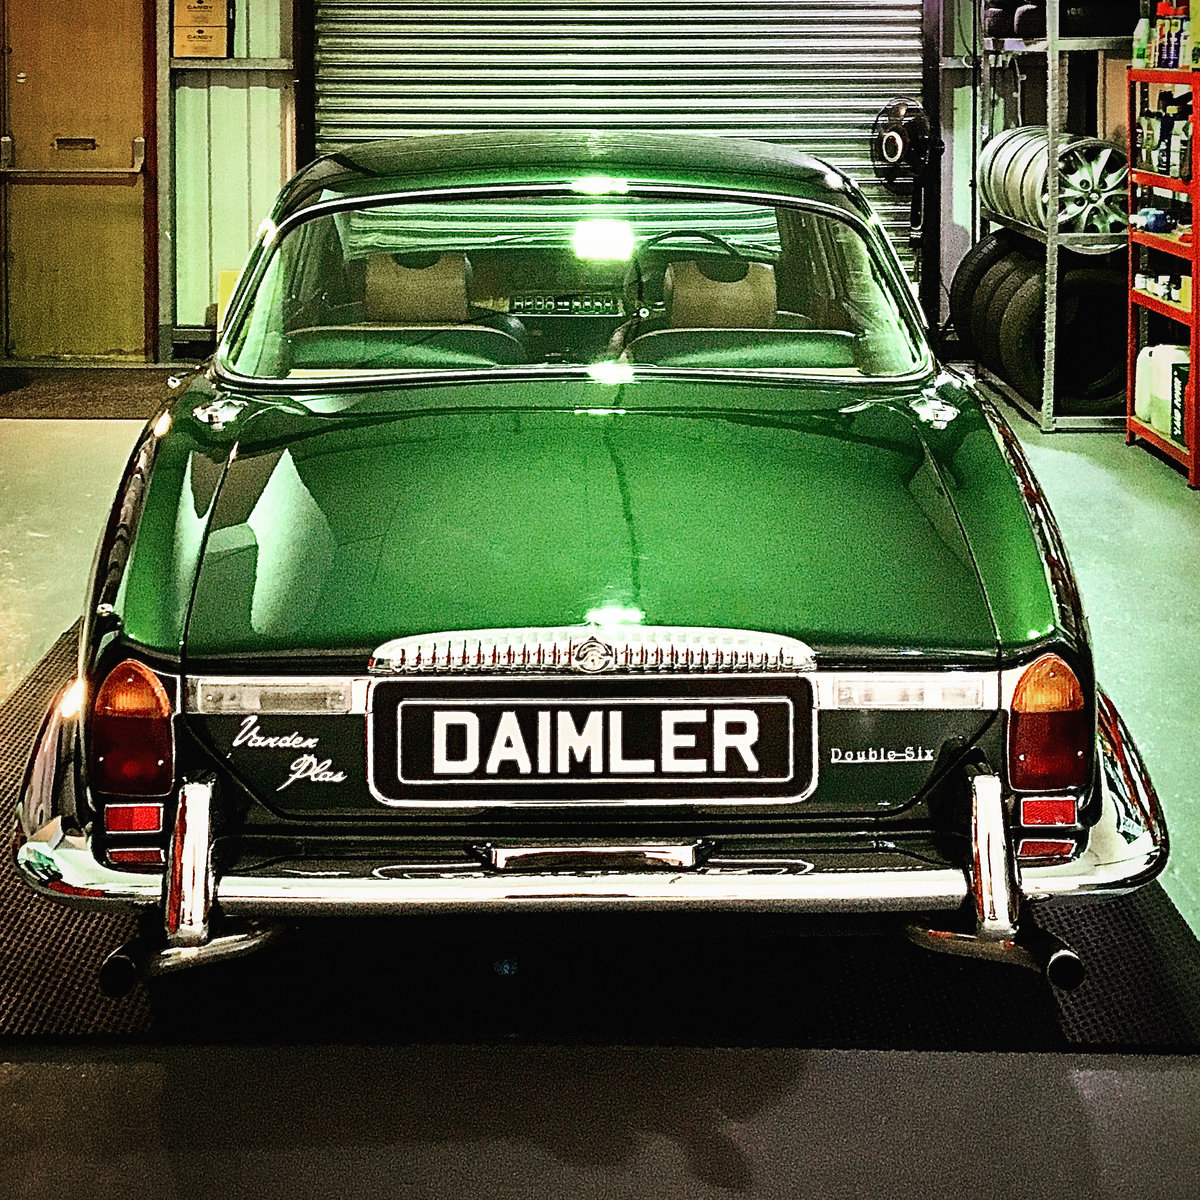 1973 Series 1 Daimler Double Six Vanden Plas - Only 14K Miles!!!l For Sale (picture 9 of 12)